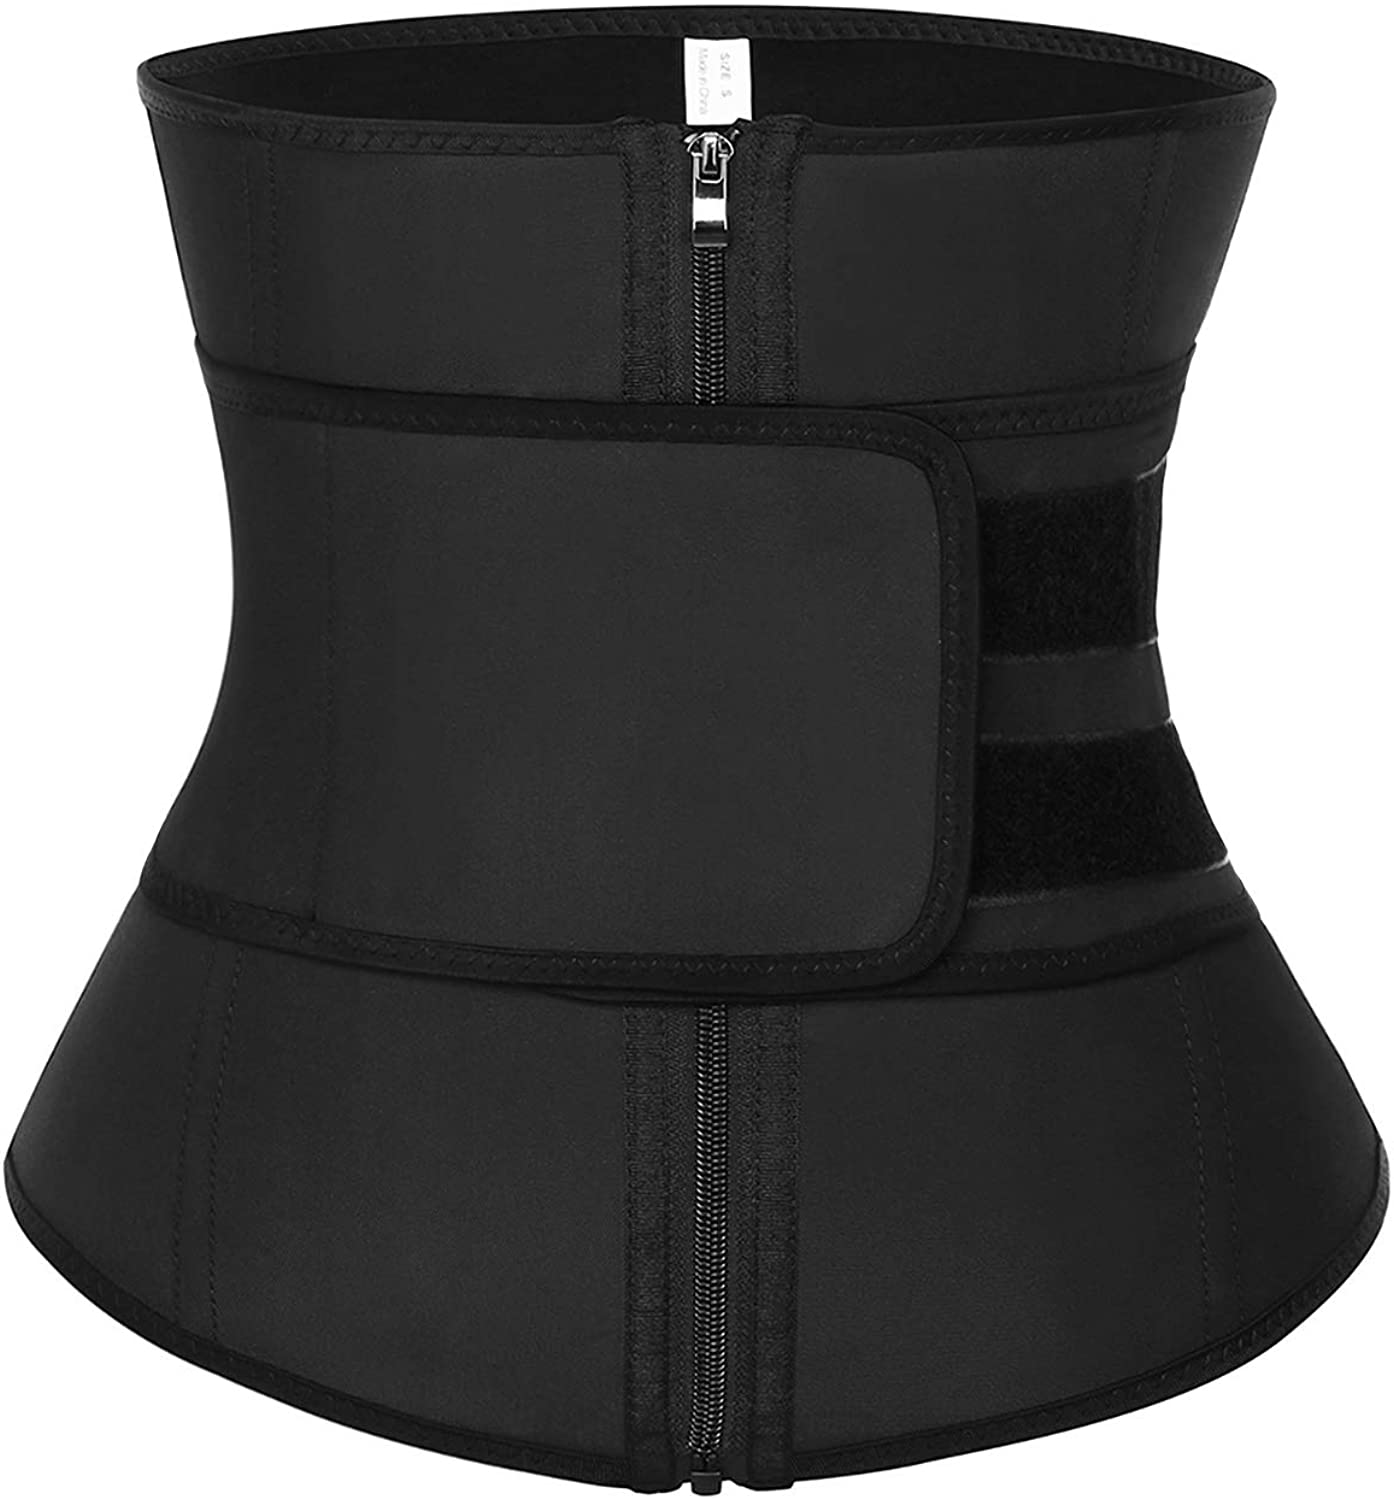 Lover-Beauty Waist Super sale period limited Max 44% OFF Trainer Corsets for Workout Women Loss Weight